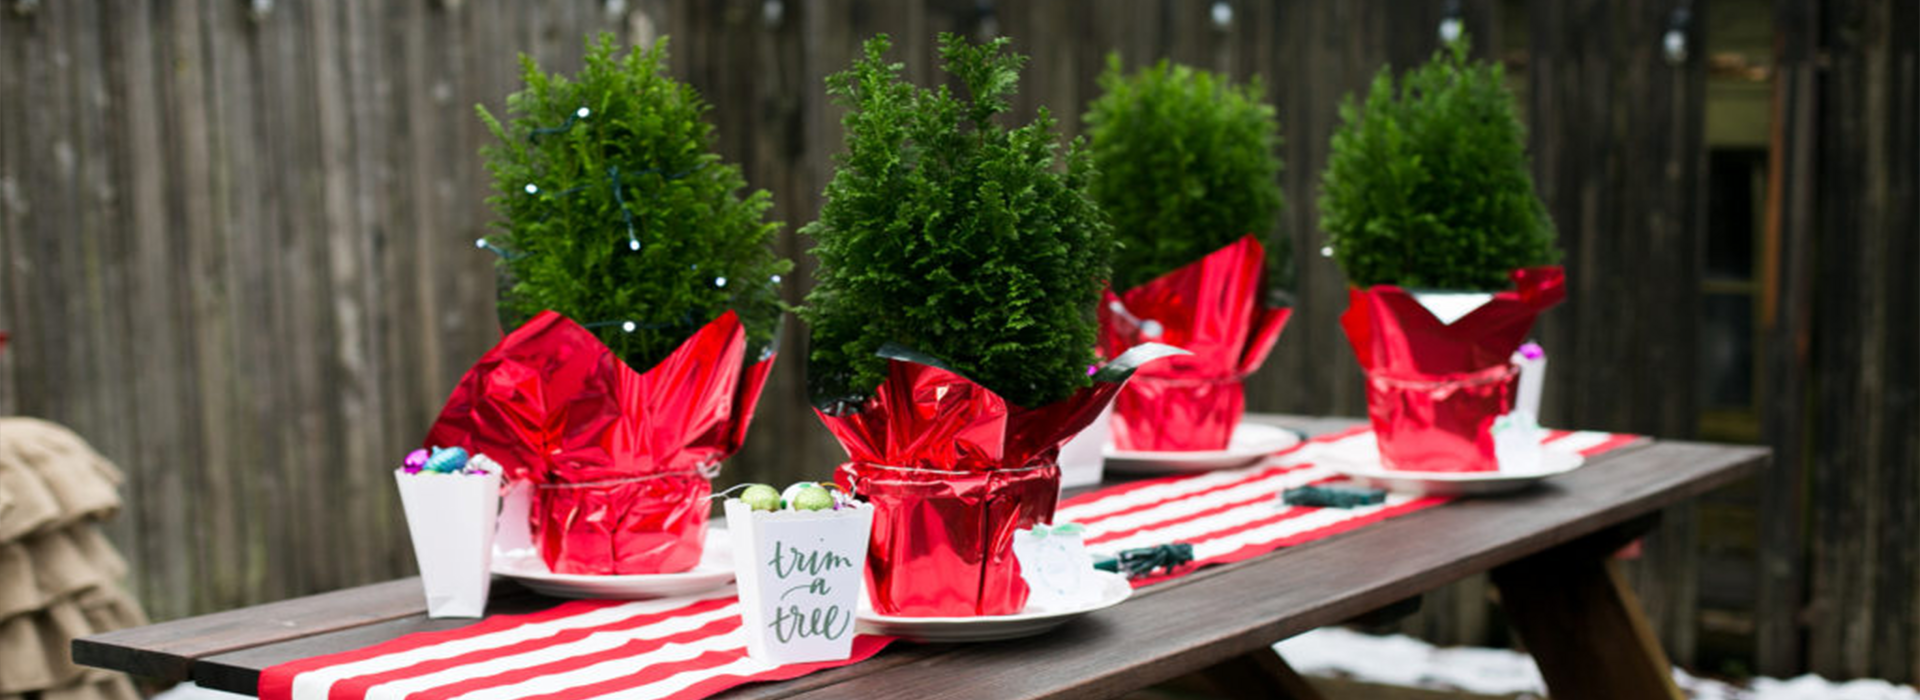 trim-a-tree-holiday-party-christmas-party-ideas